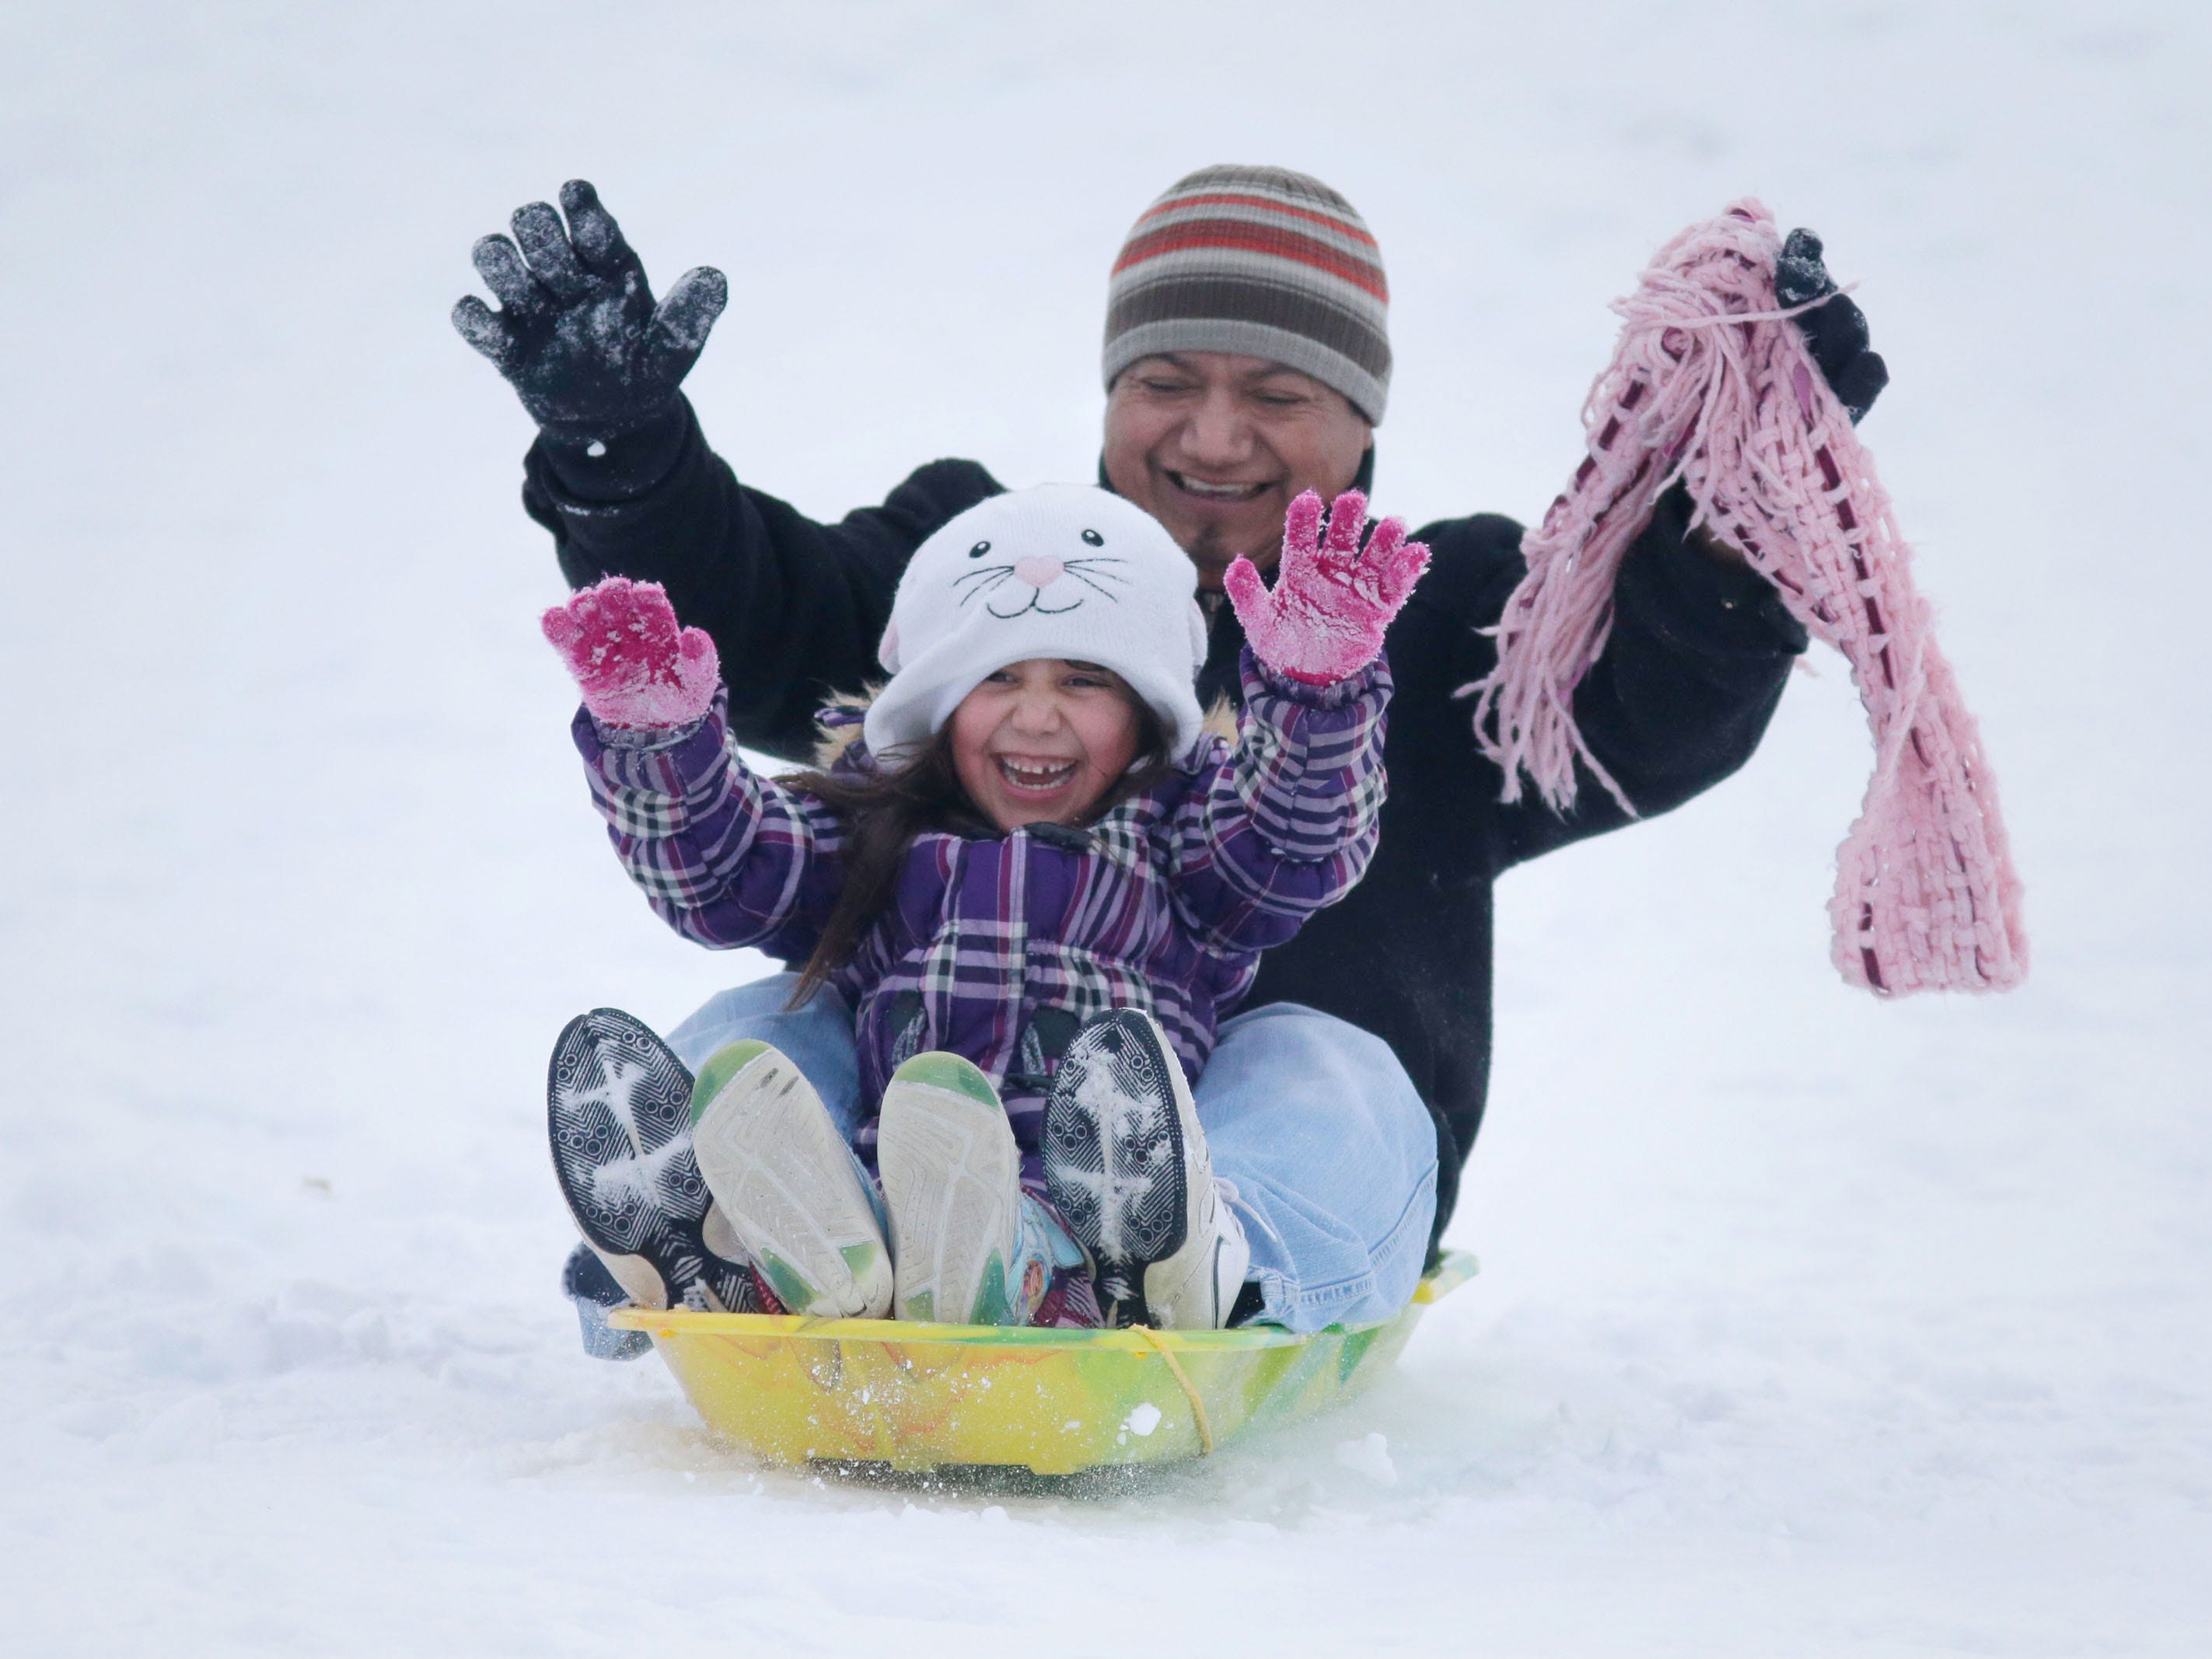 Geno Ramos, of Sheboygan, enjoys a ride down the Kiwanis Park sledding hill with his daughter Dalia, 5, Saturday, February 10, 2018, in Sheboygan, Wis.